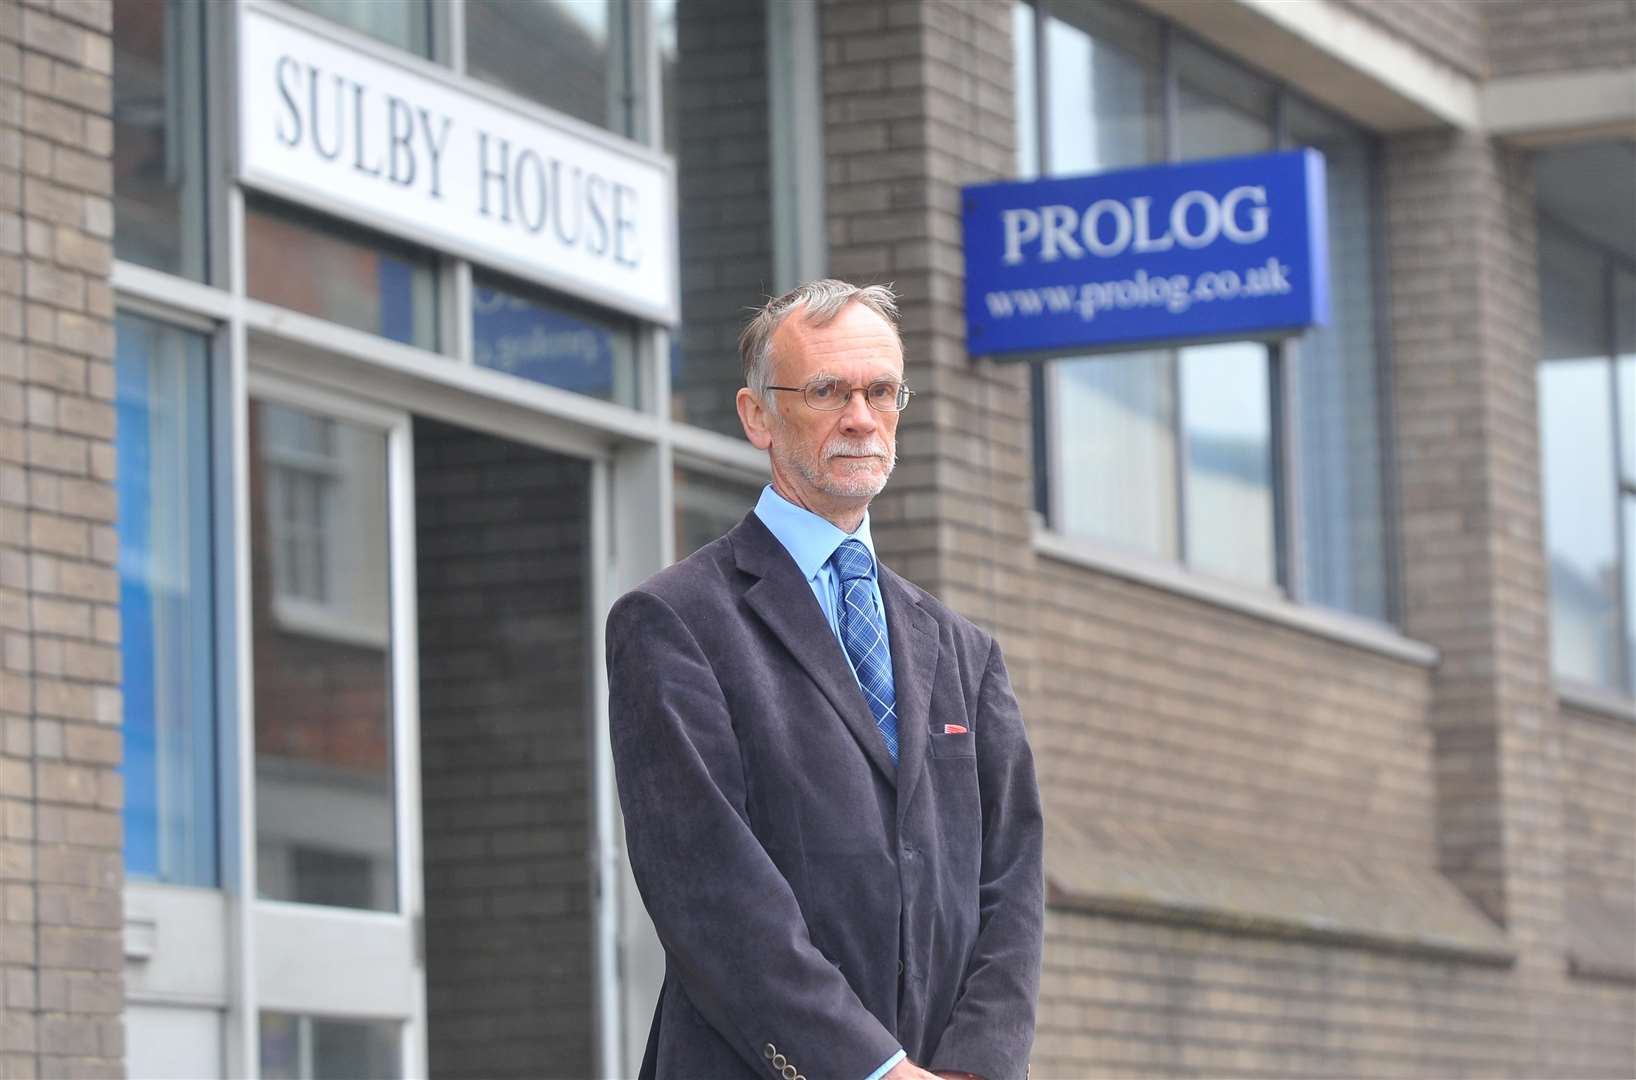 Sudbury Chamber of Commerce chairman John McMillan outside the former Prolog offices at Sulby House in North Street. (5683424)